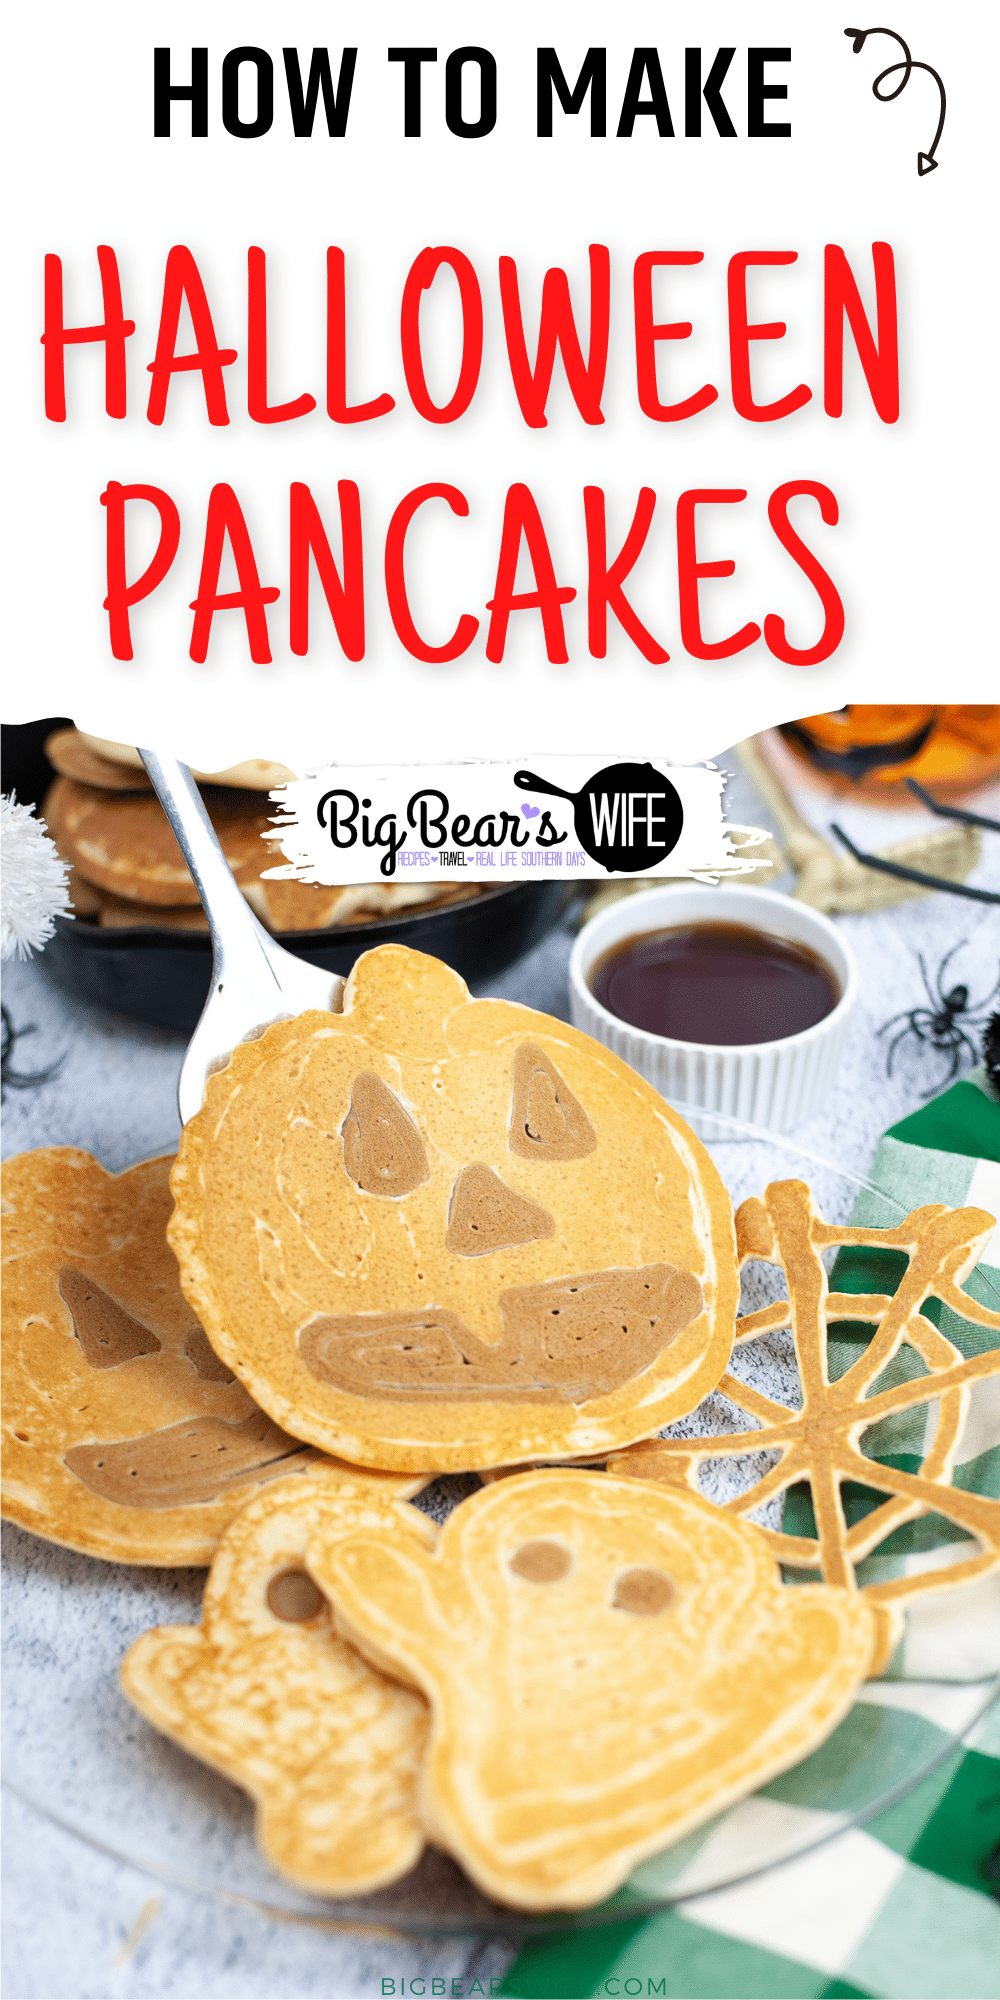 A Halloween breakfast that is perfect for any spooky Monster! These Halloween Pancakes are shaped like ghosts, pumpkins and spiderwebs! via @bigbearswife